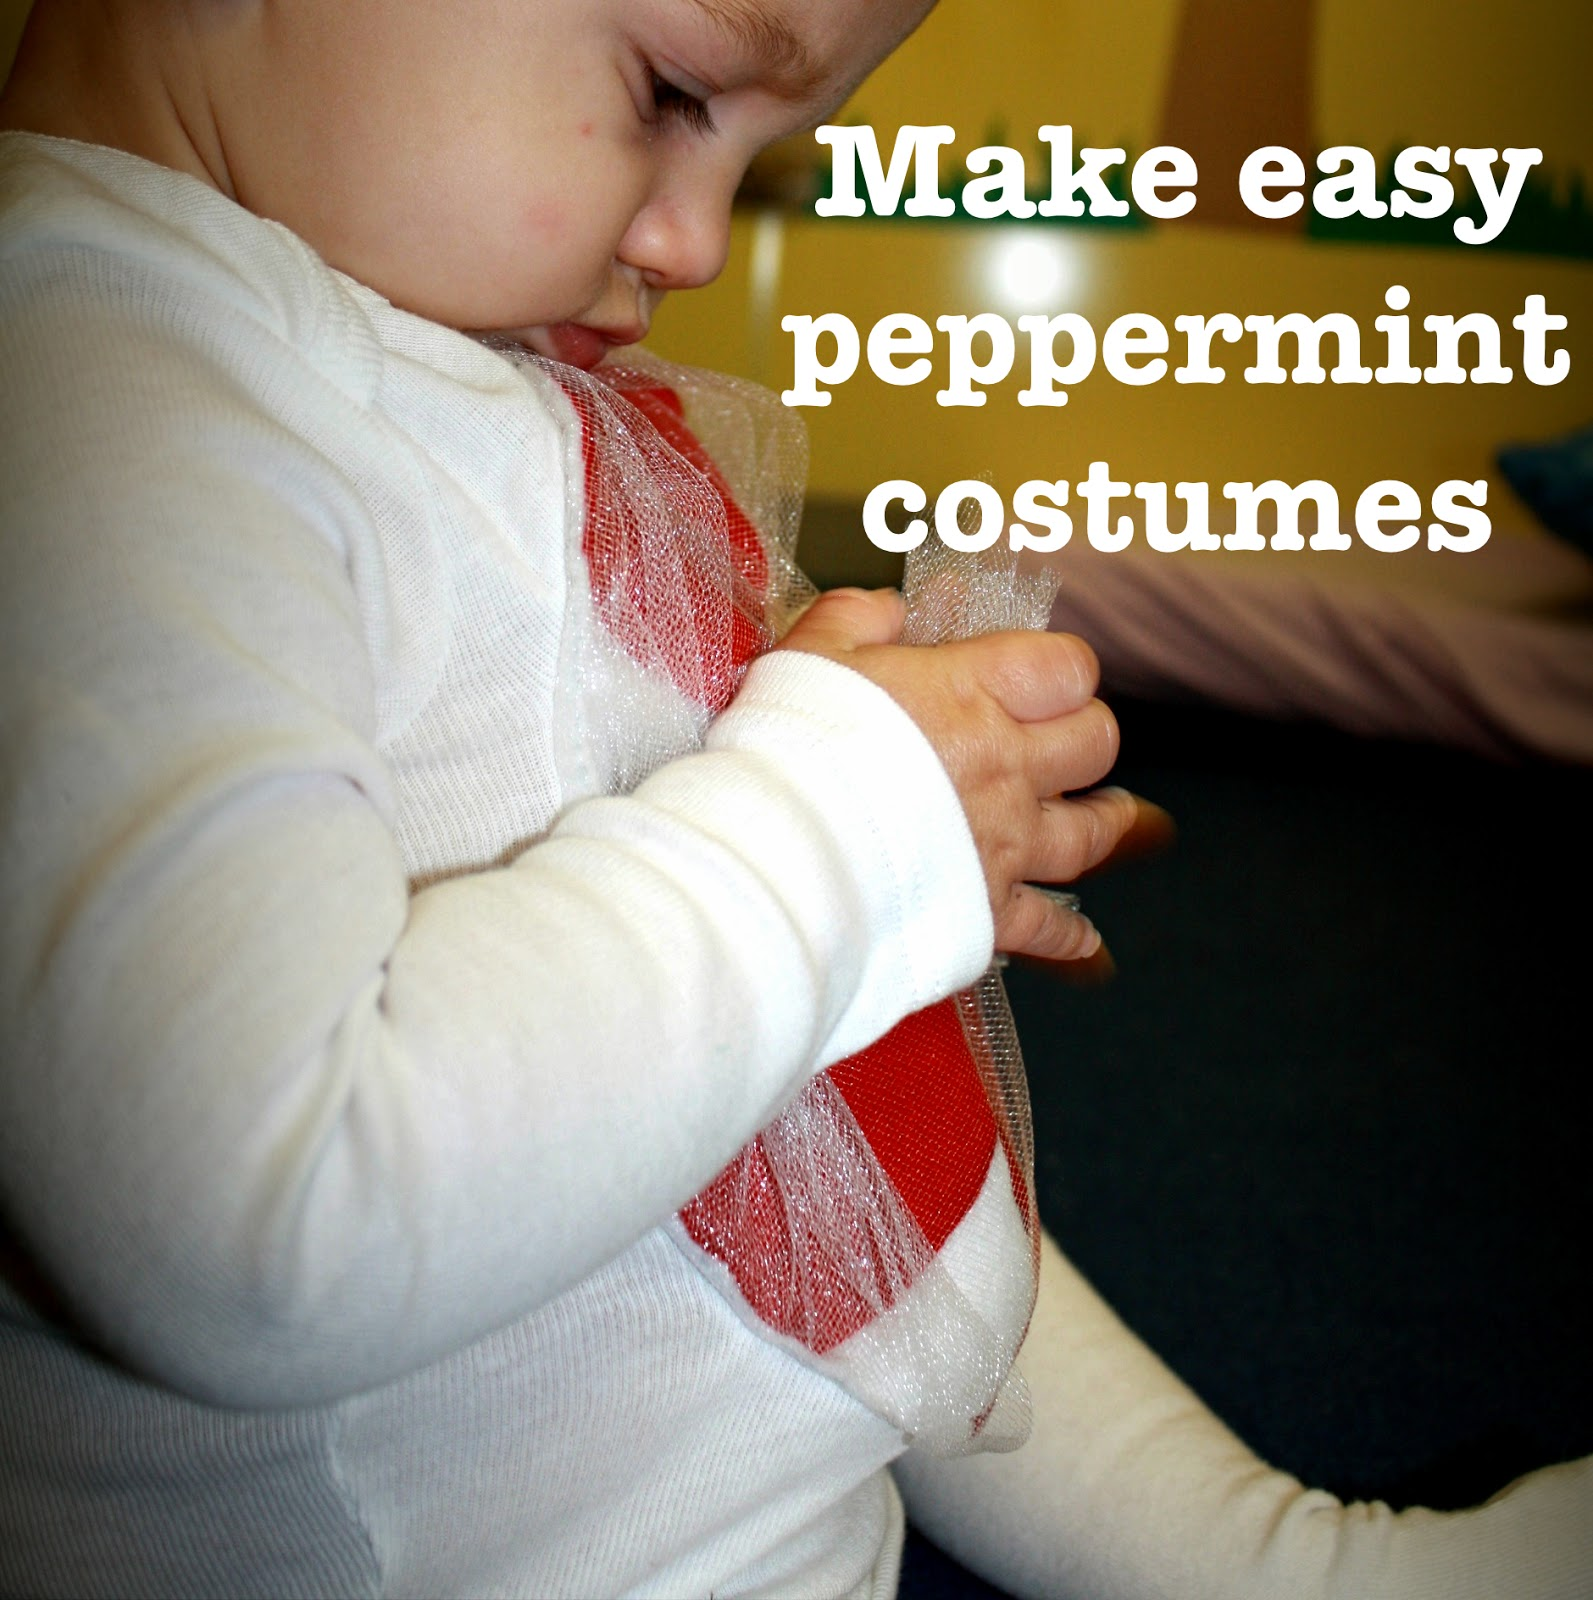 baby peppermint costume